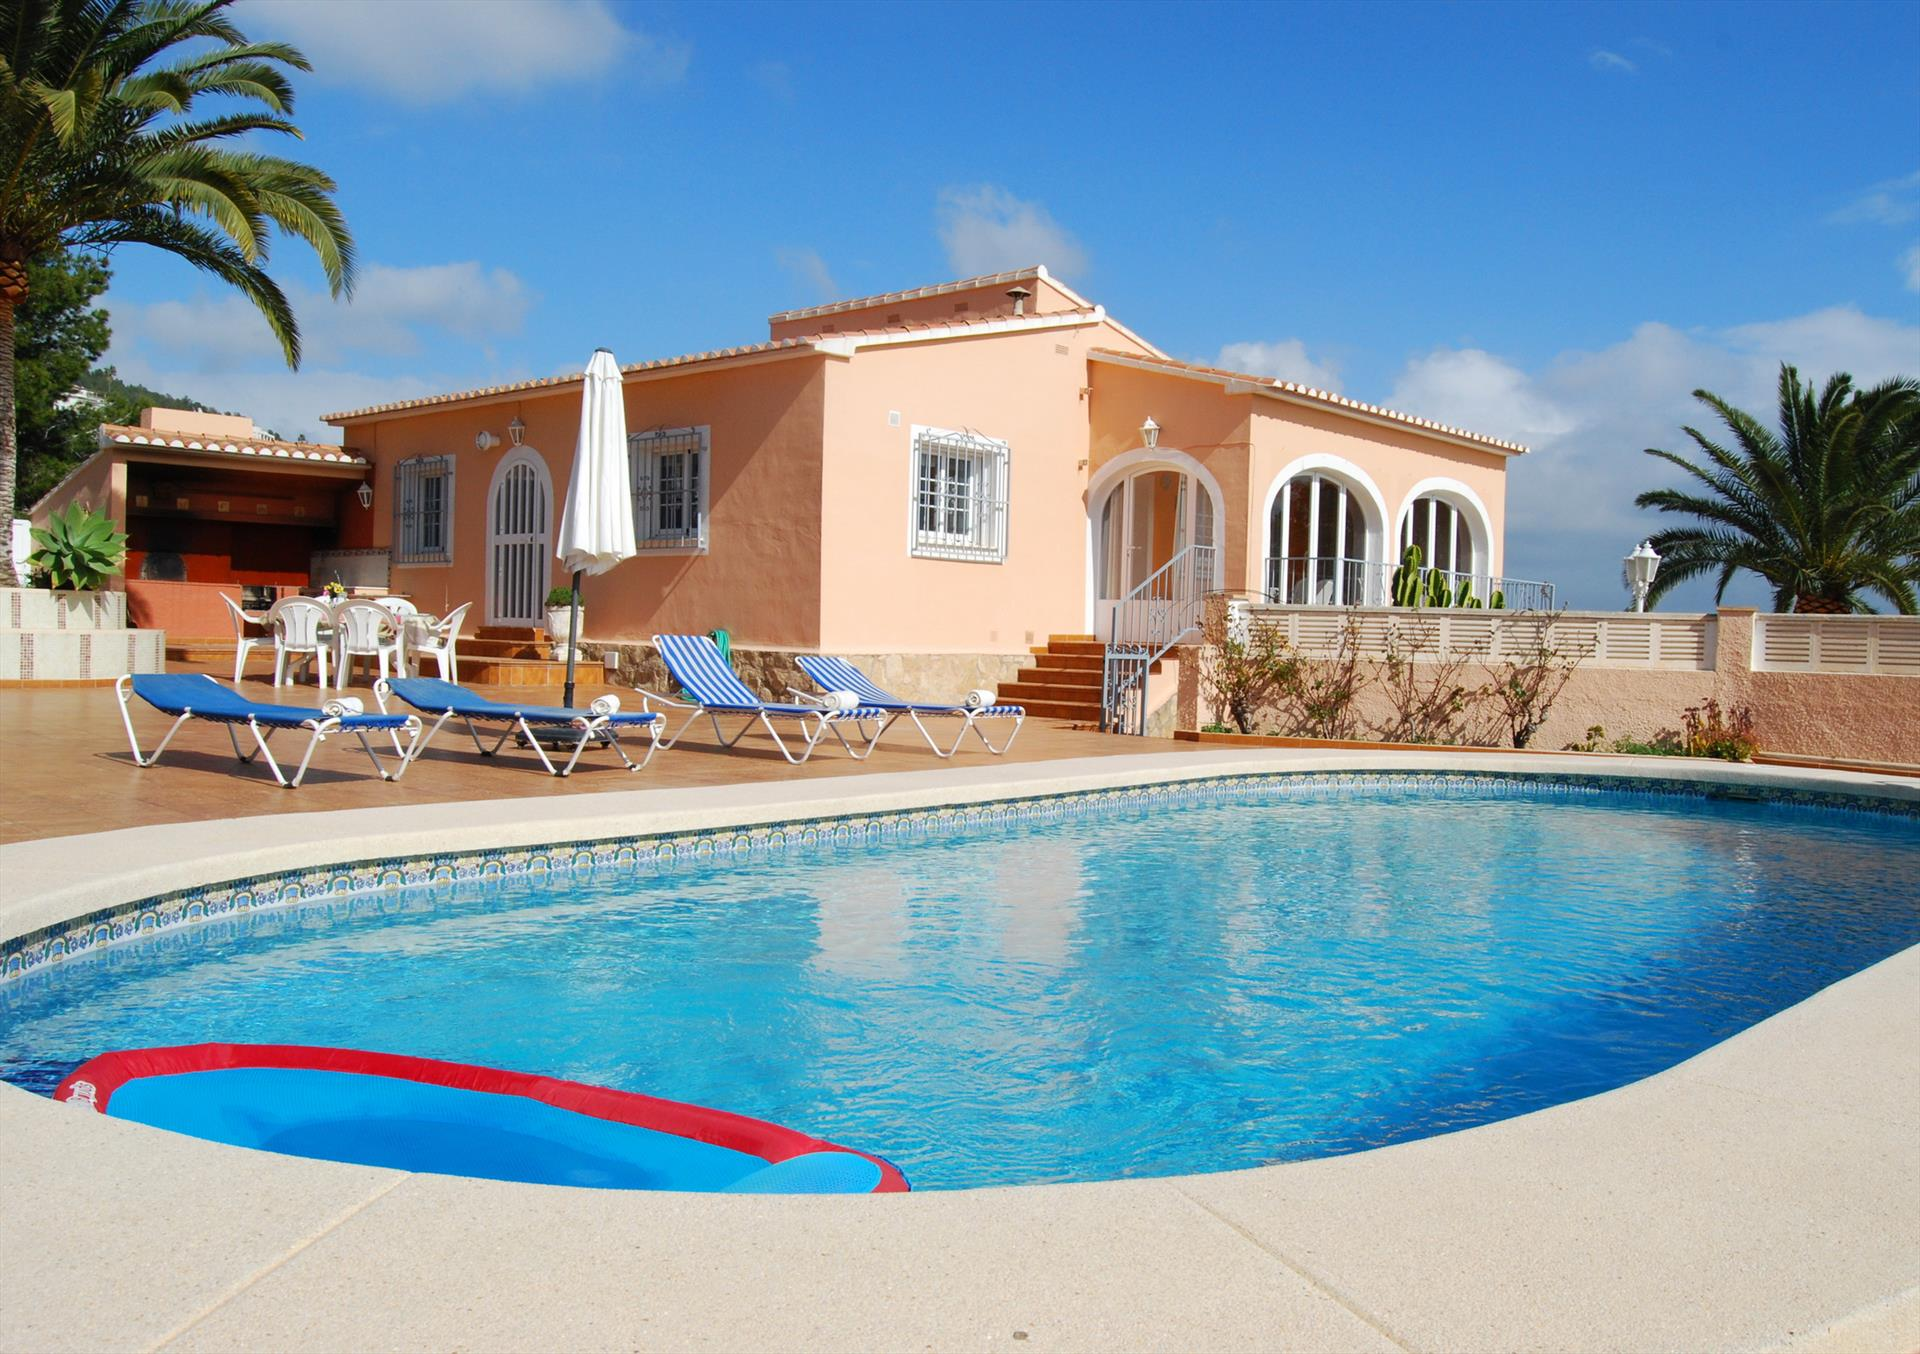 Pepe, Comfortable villa  with private pool in Benissa, on the Costa Blanca, Spain for 6 persons.....